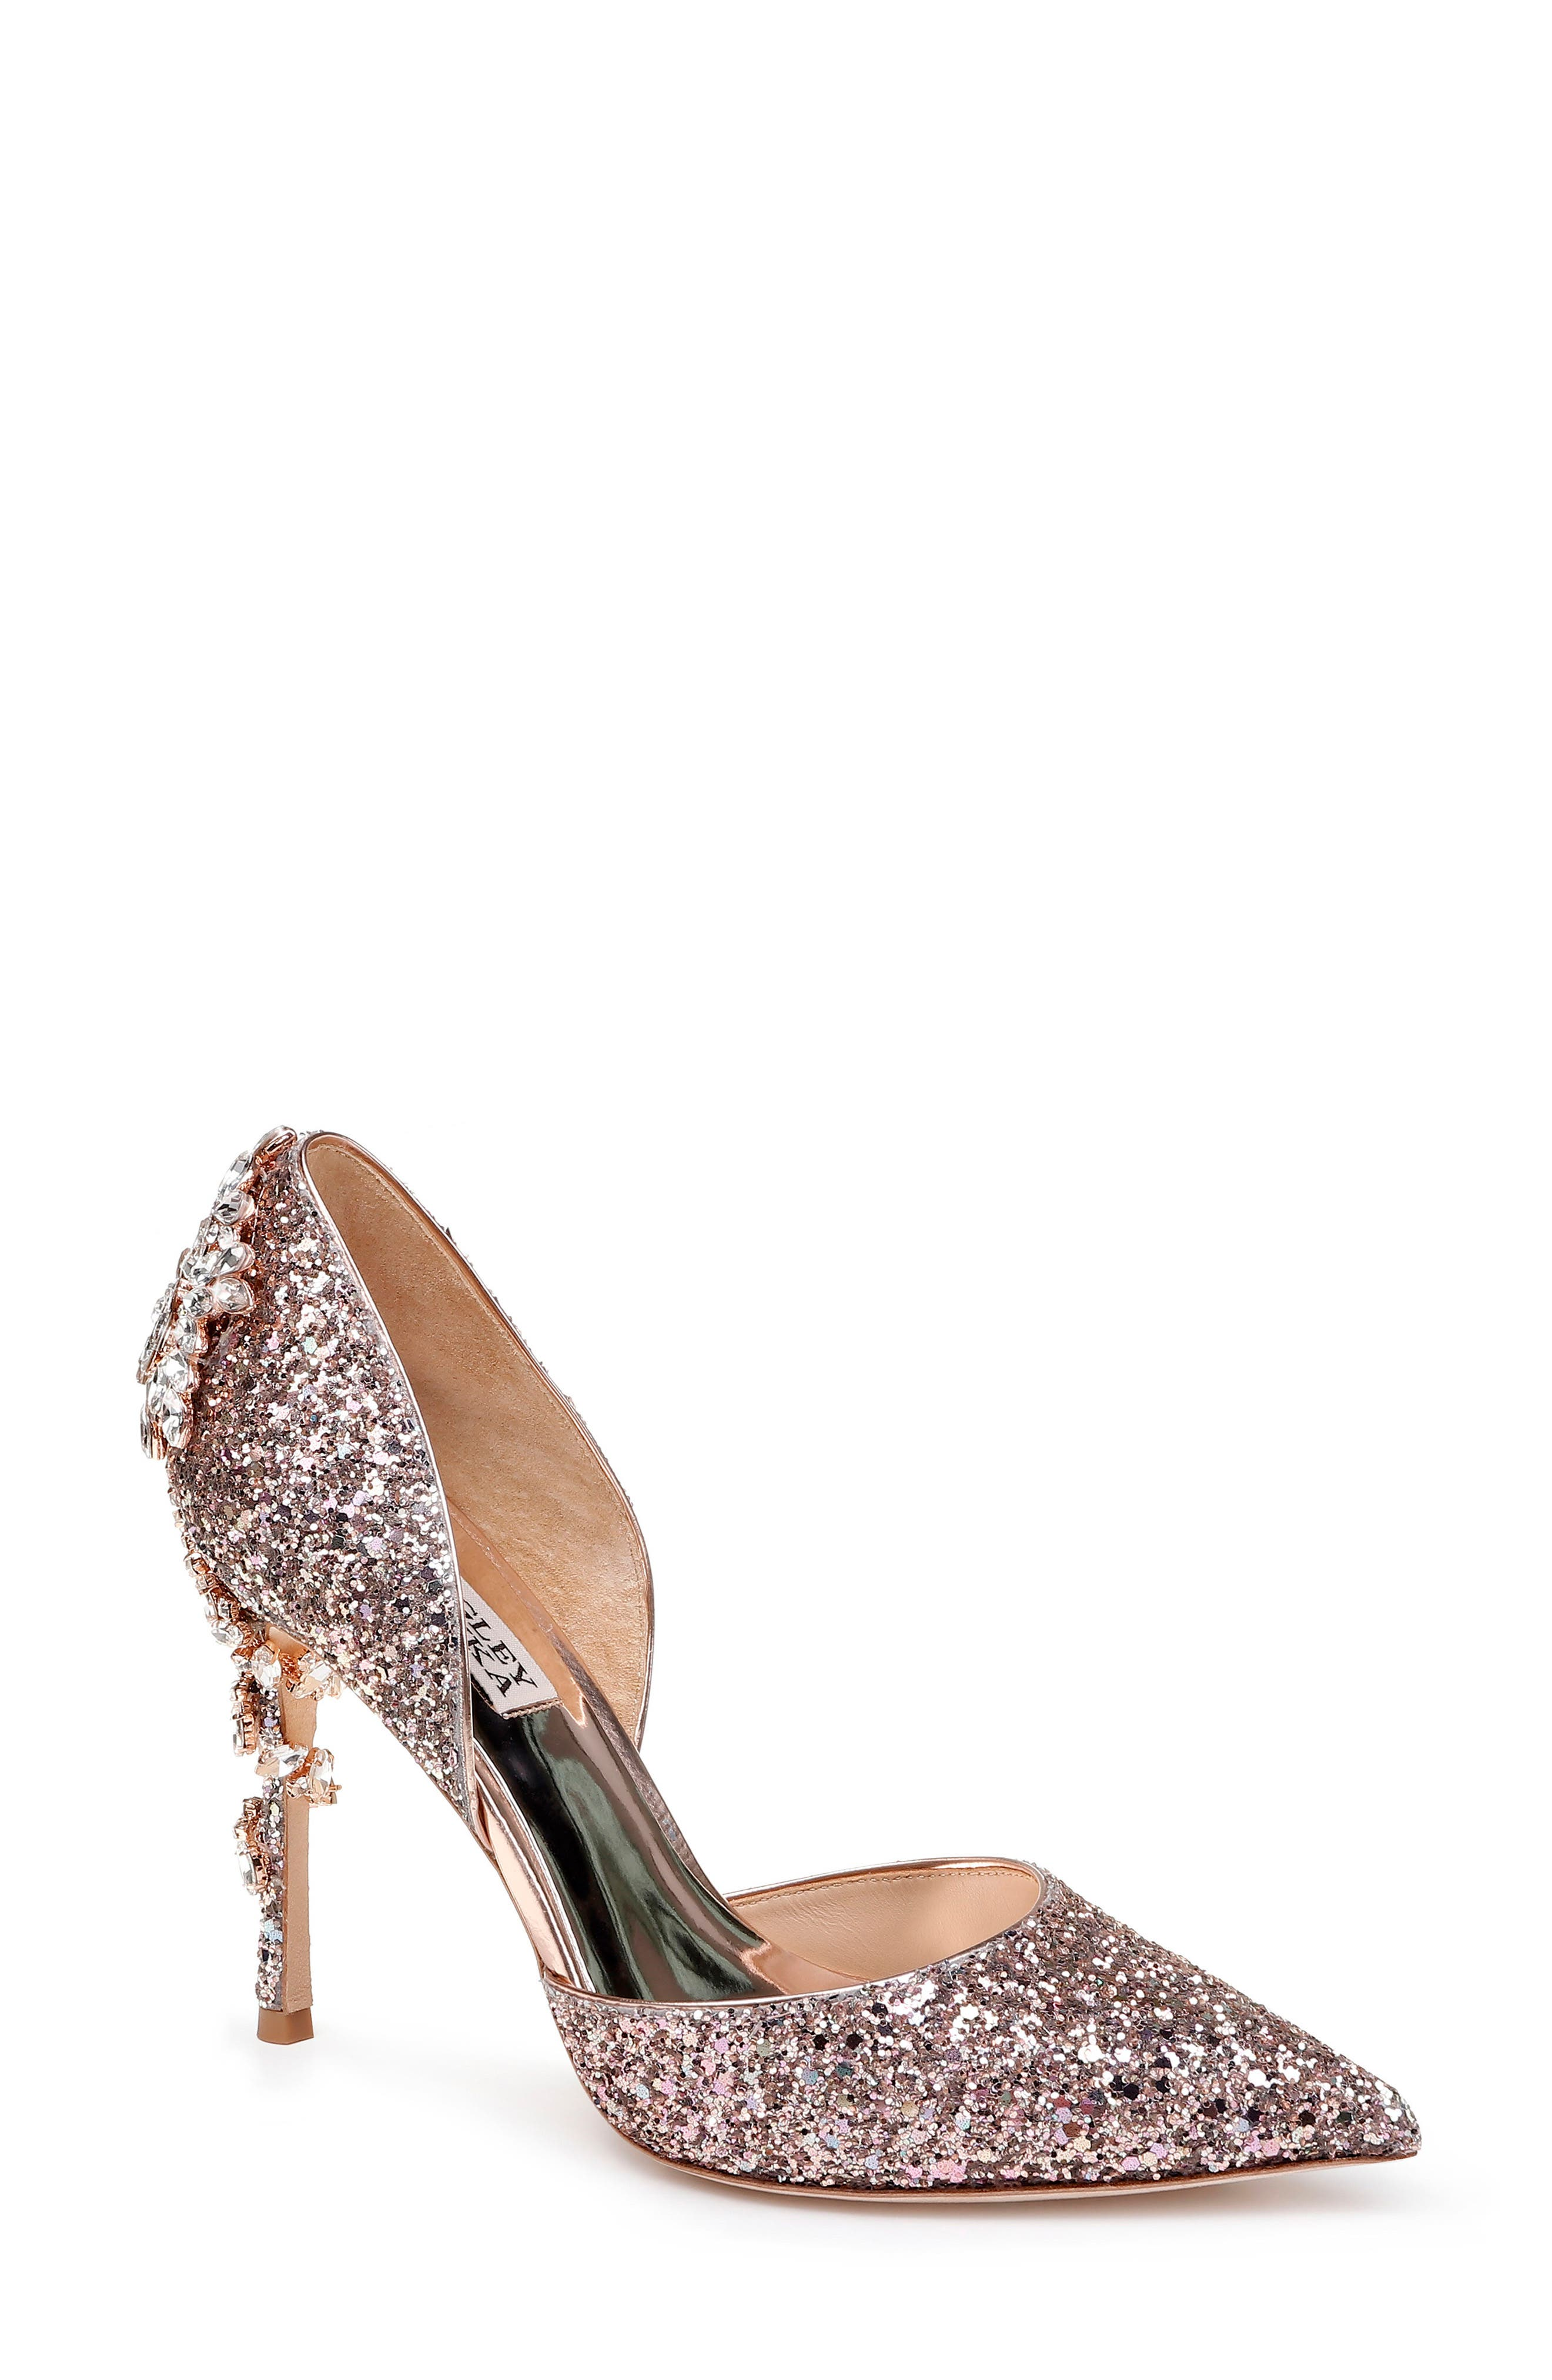 Badgley Mischka Pumps BADGLEY MISCHKA VOGUE D'ORSAY PUMP